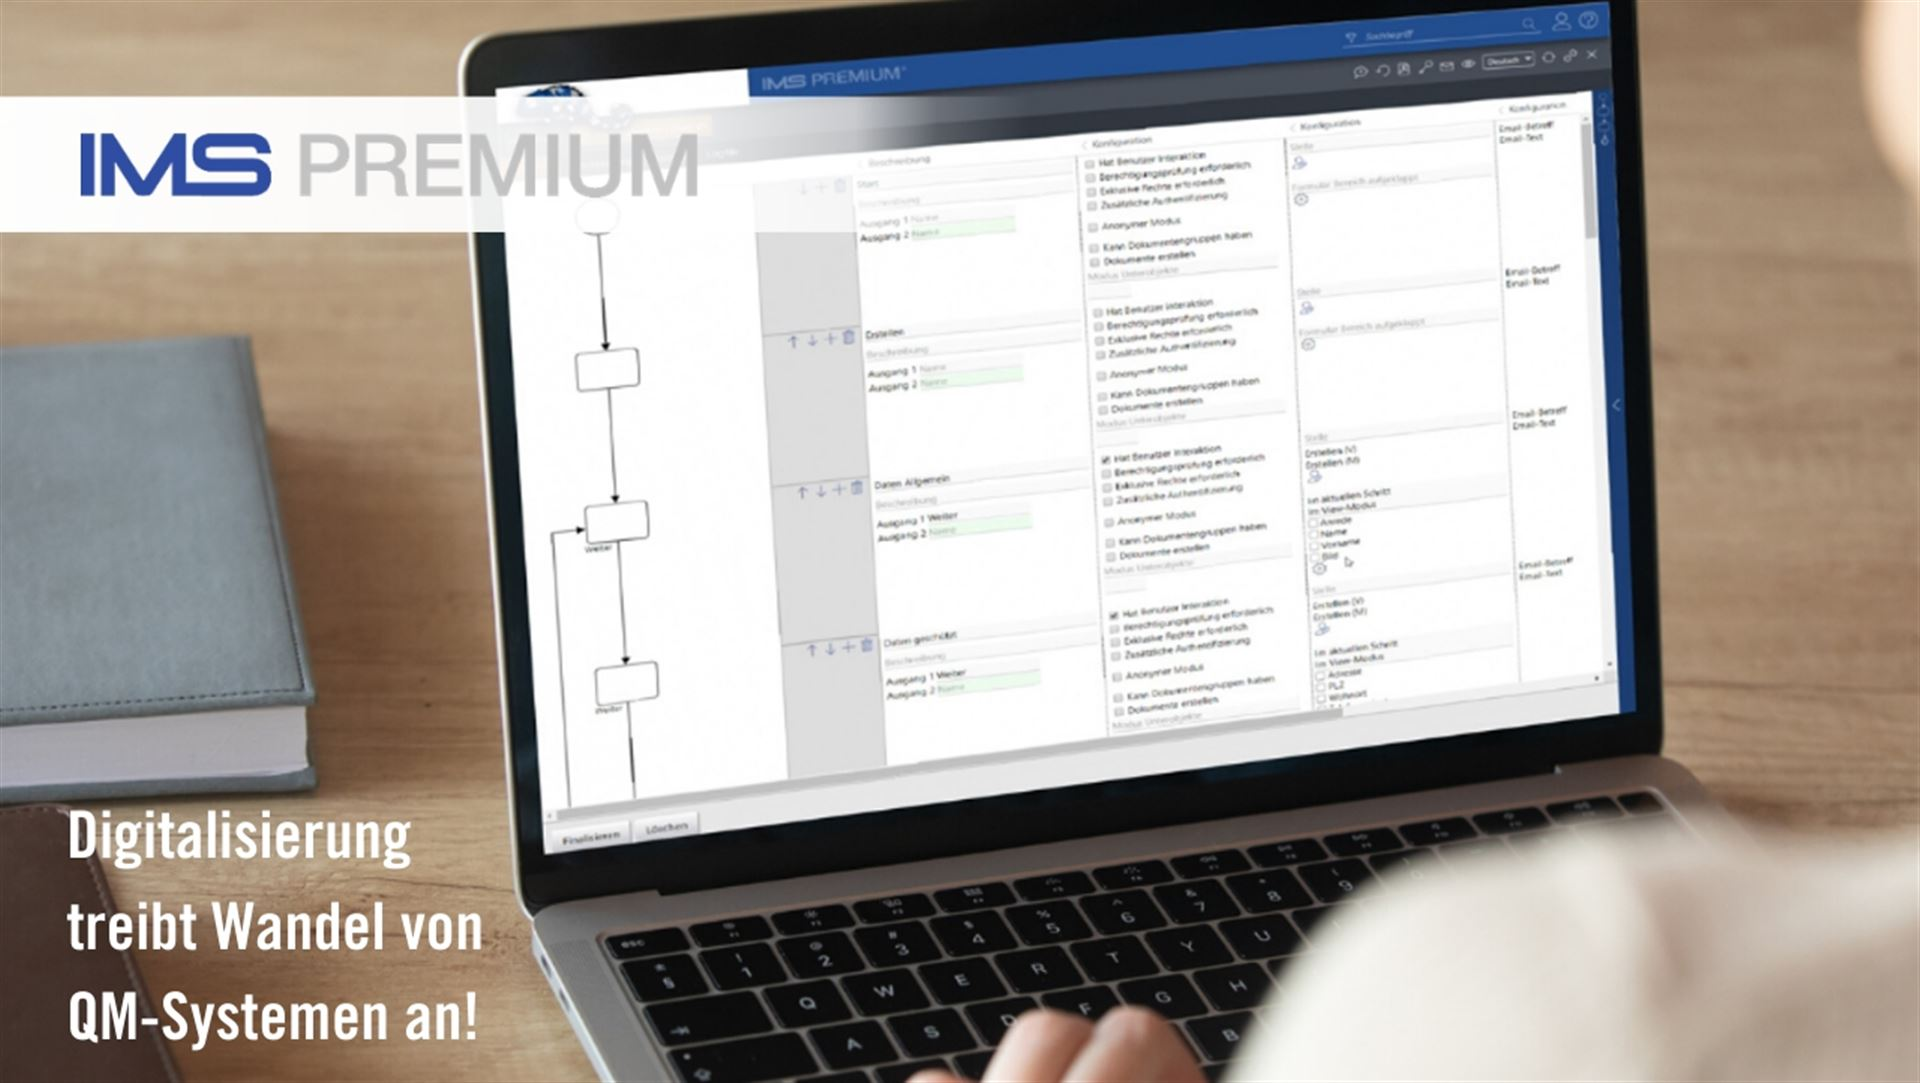 Quality management as a software solution: IMS PREMIUM - Your QMS of the future!